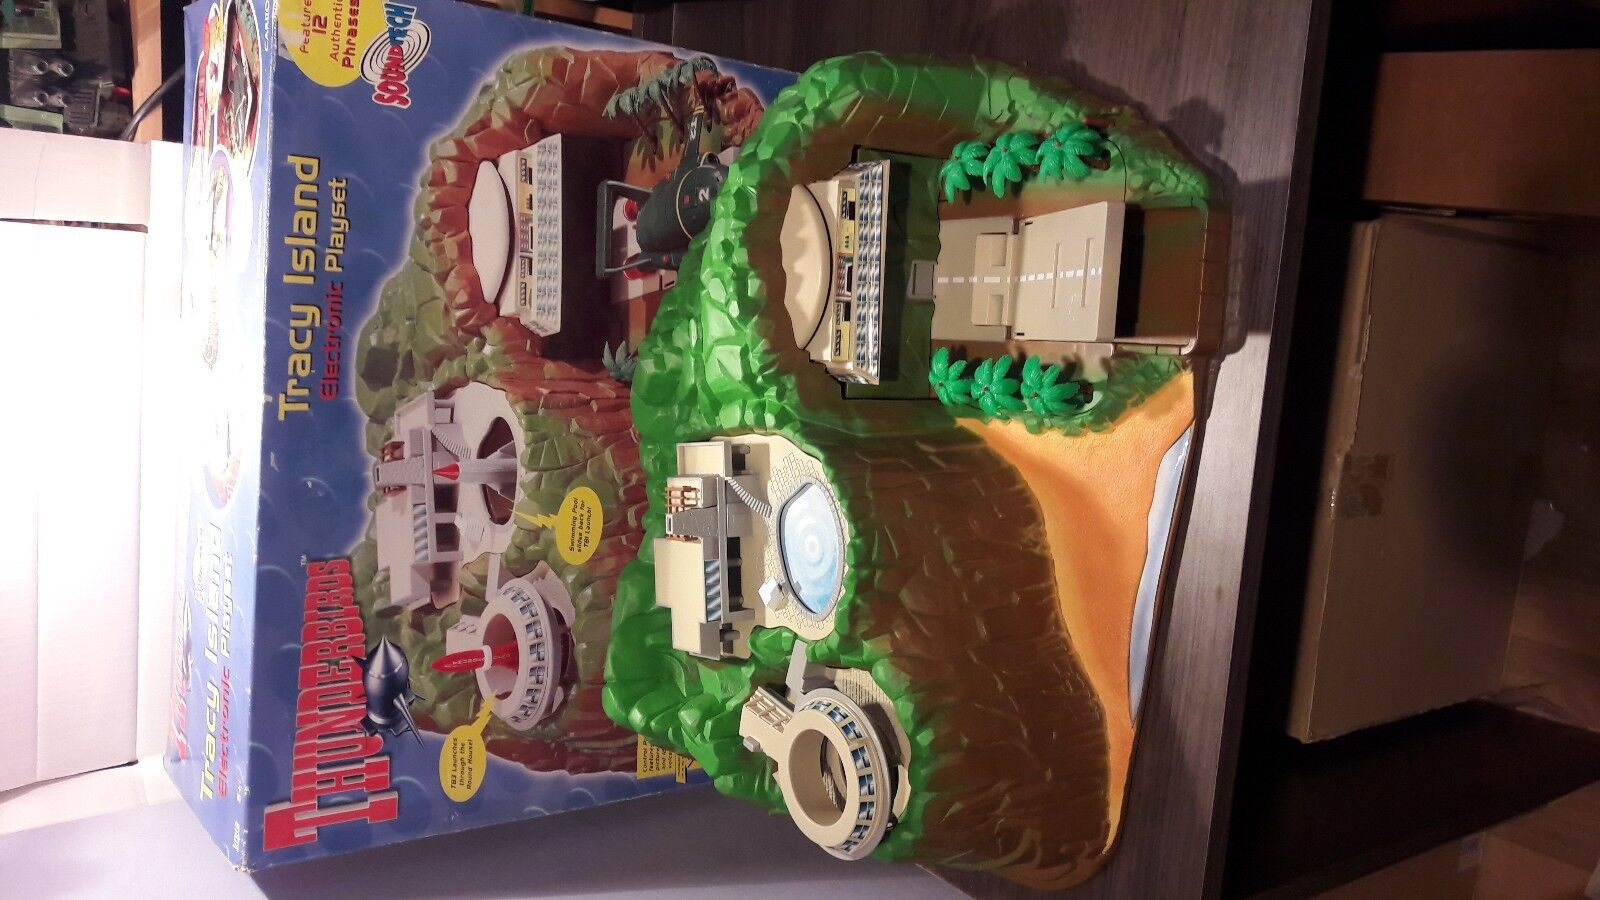 THUNDERBIRDS TRACY ISLAND ELECRONIC PLAYSET.  A GERRY ANDERSON PRODUCTION. 2000